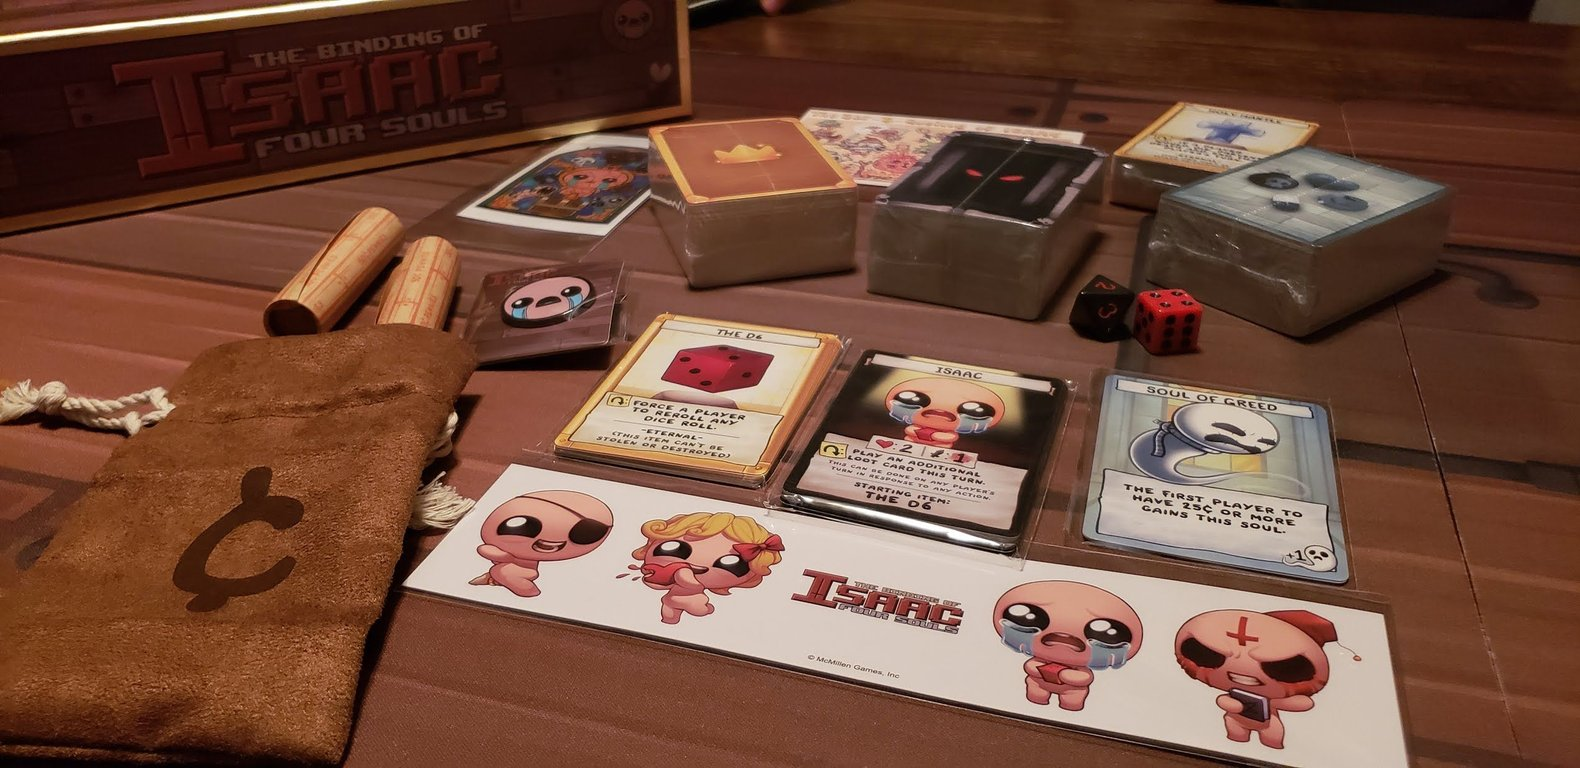 The Binding of Isaac: Four Souls components